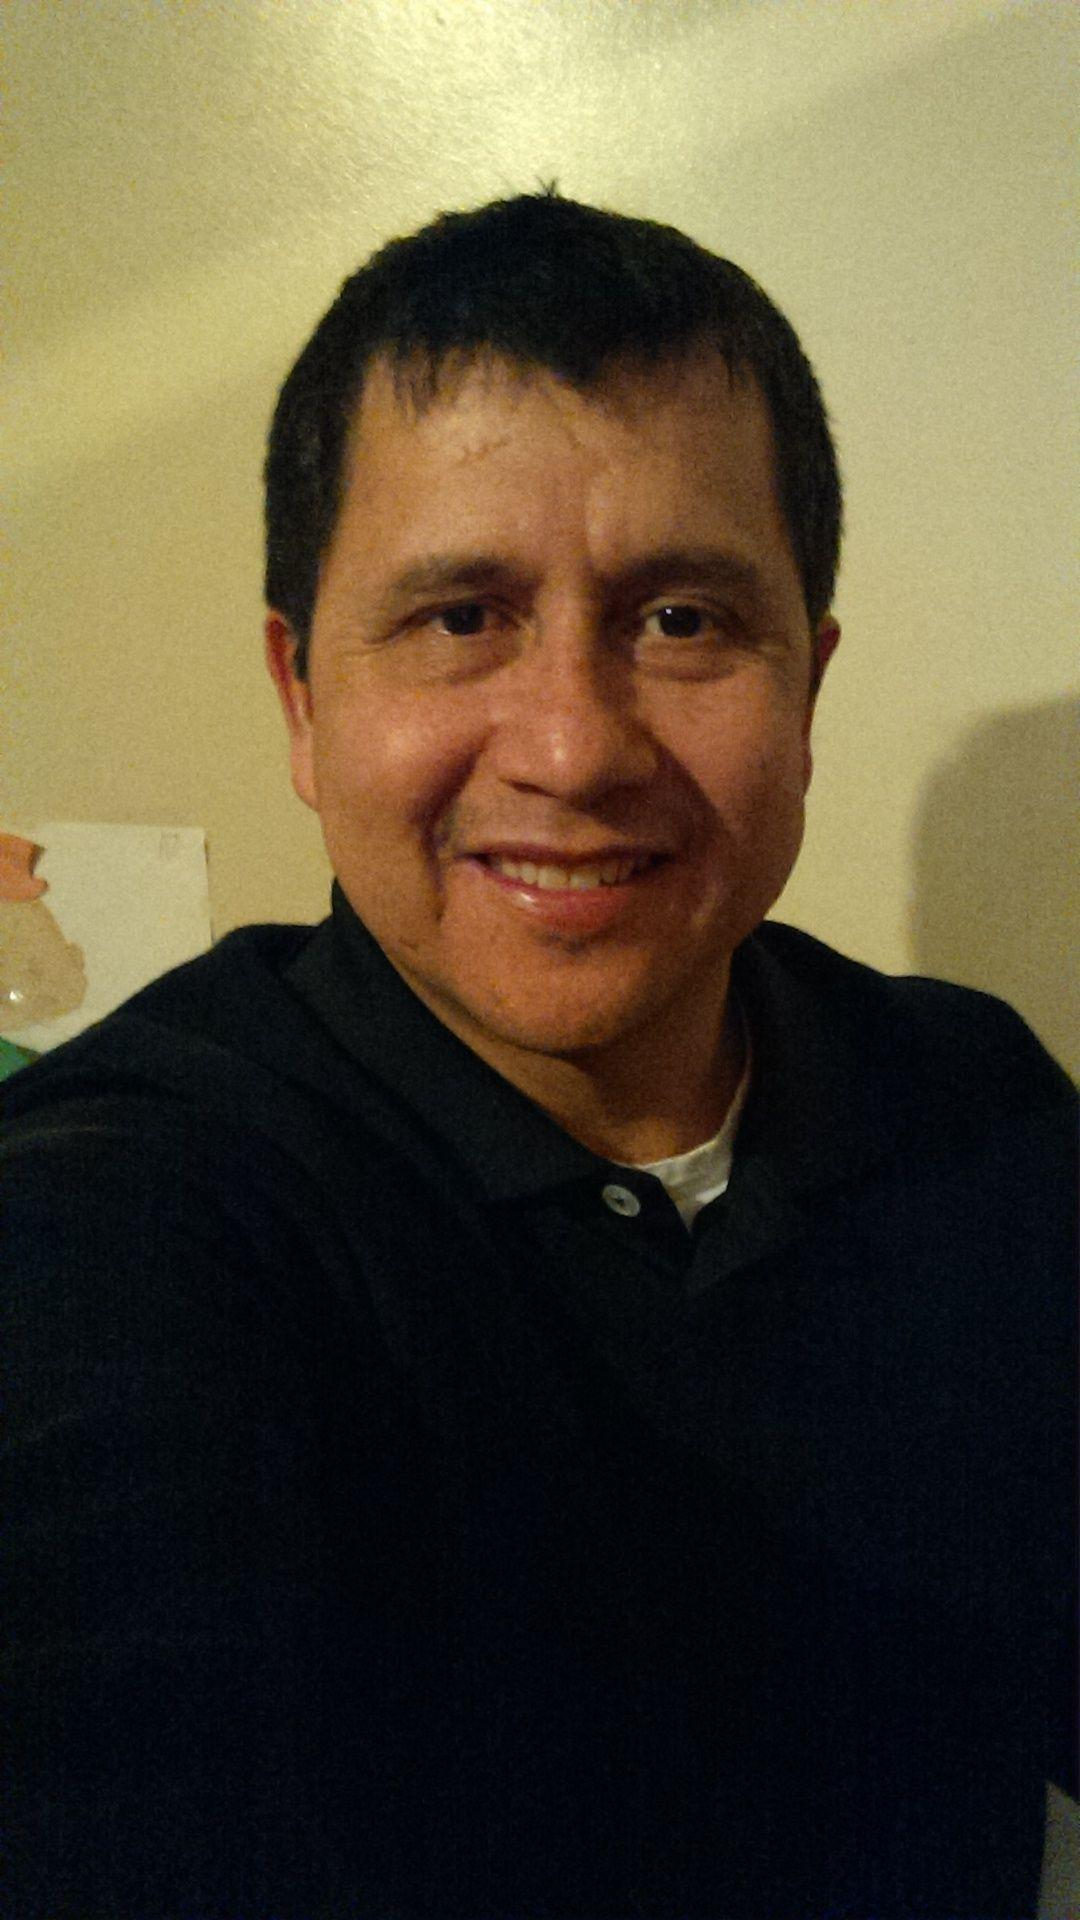 ridgefield park latin singles Someone you can love is nearby browse profiles & photos of latino singles in ridgefield park, nj join matchcom, the leader in online dating with more dates, more relationships and more.